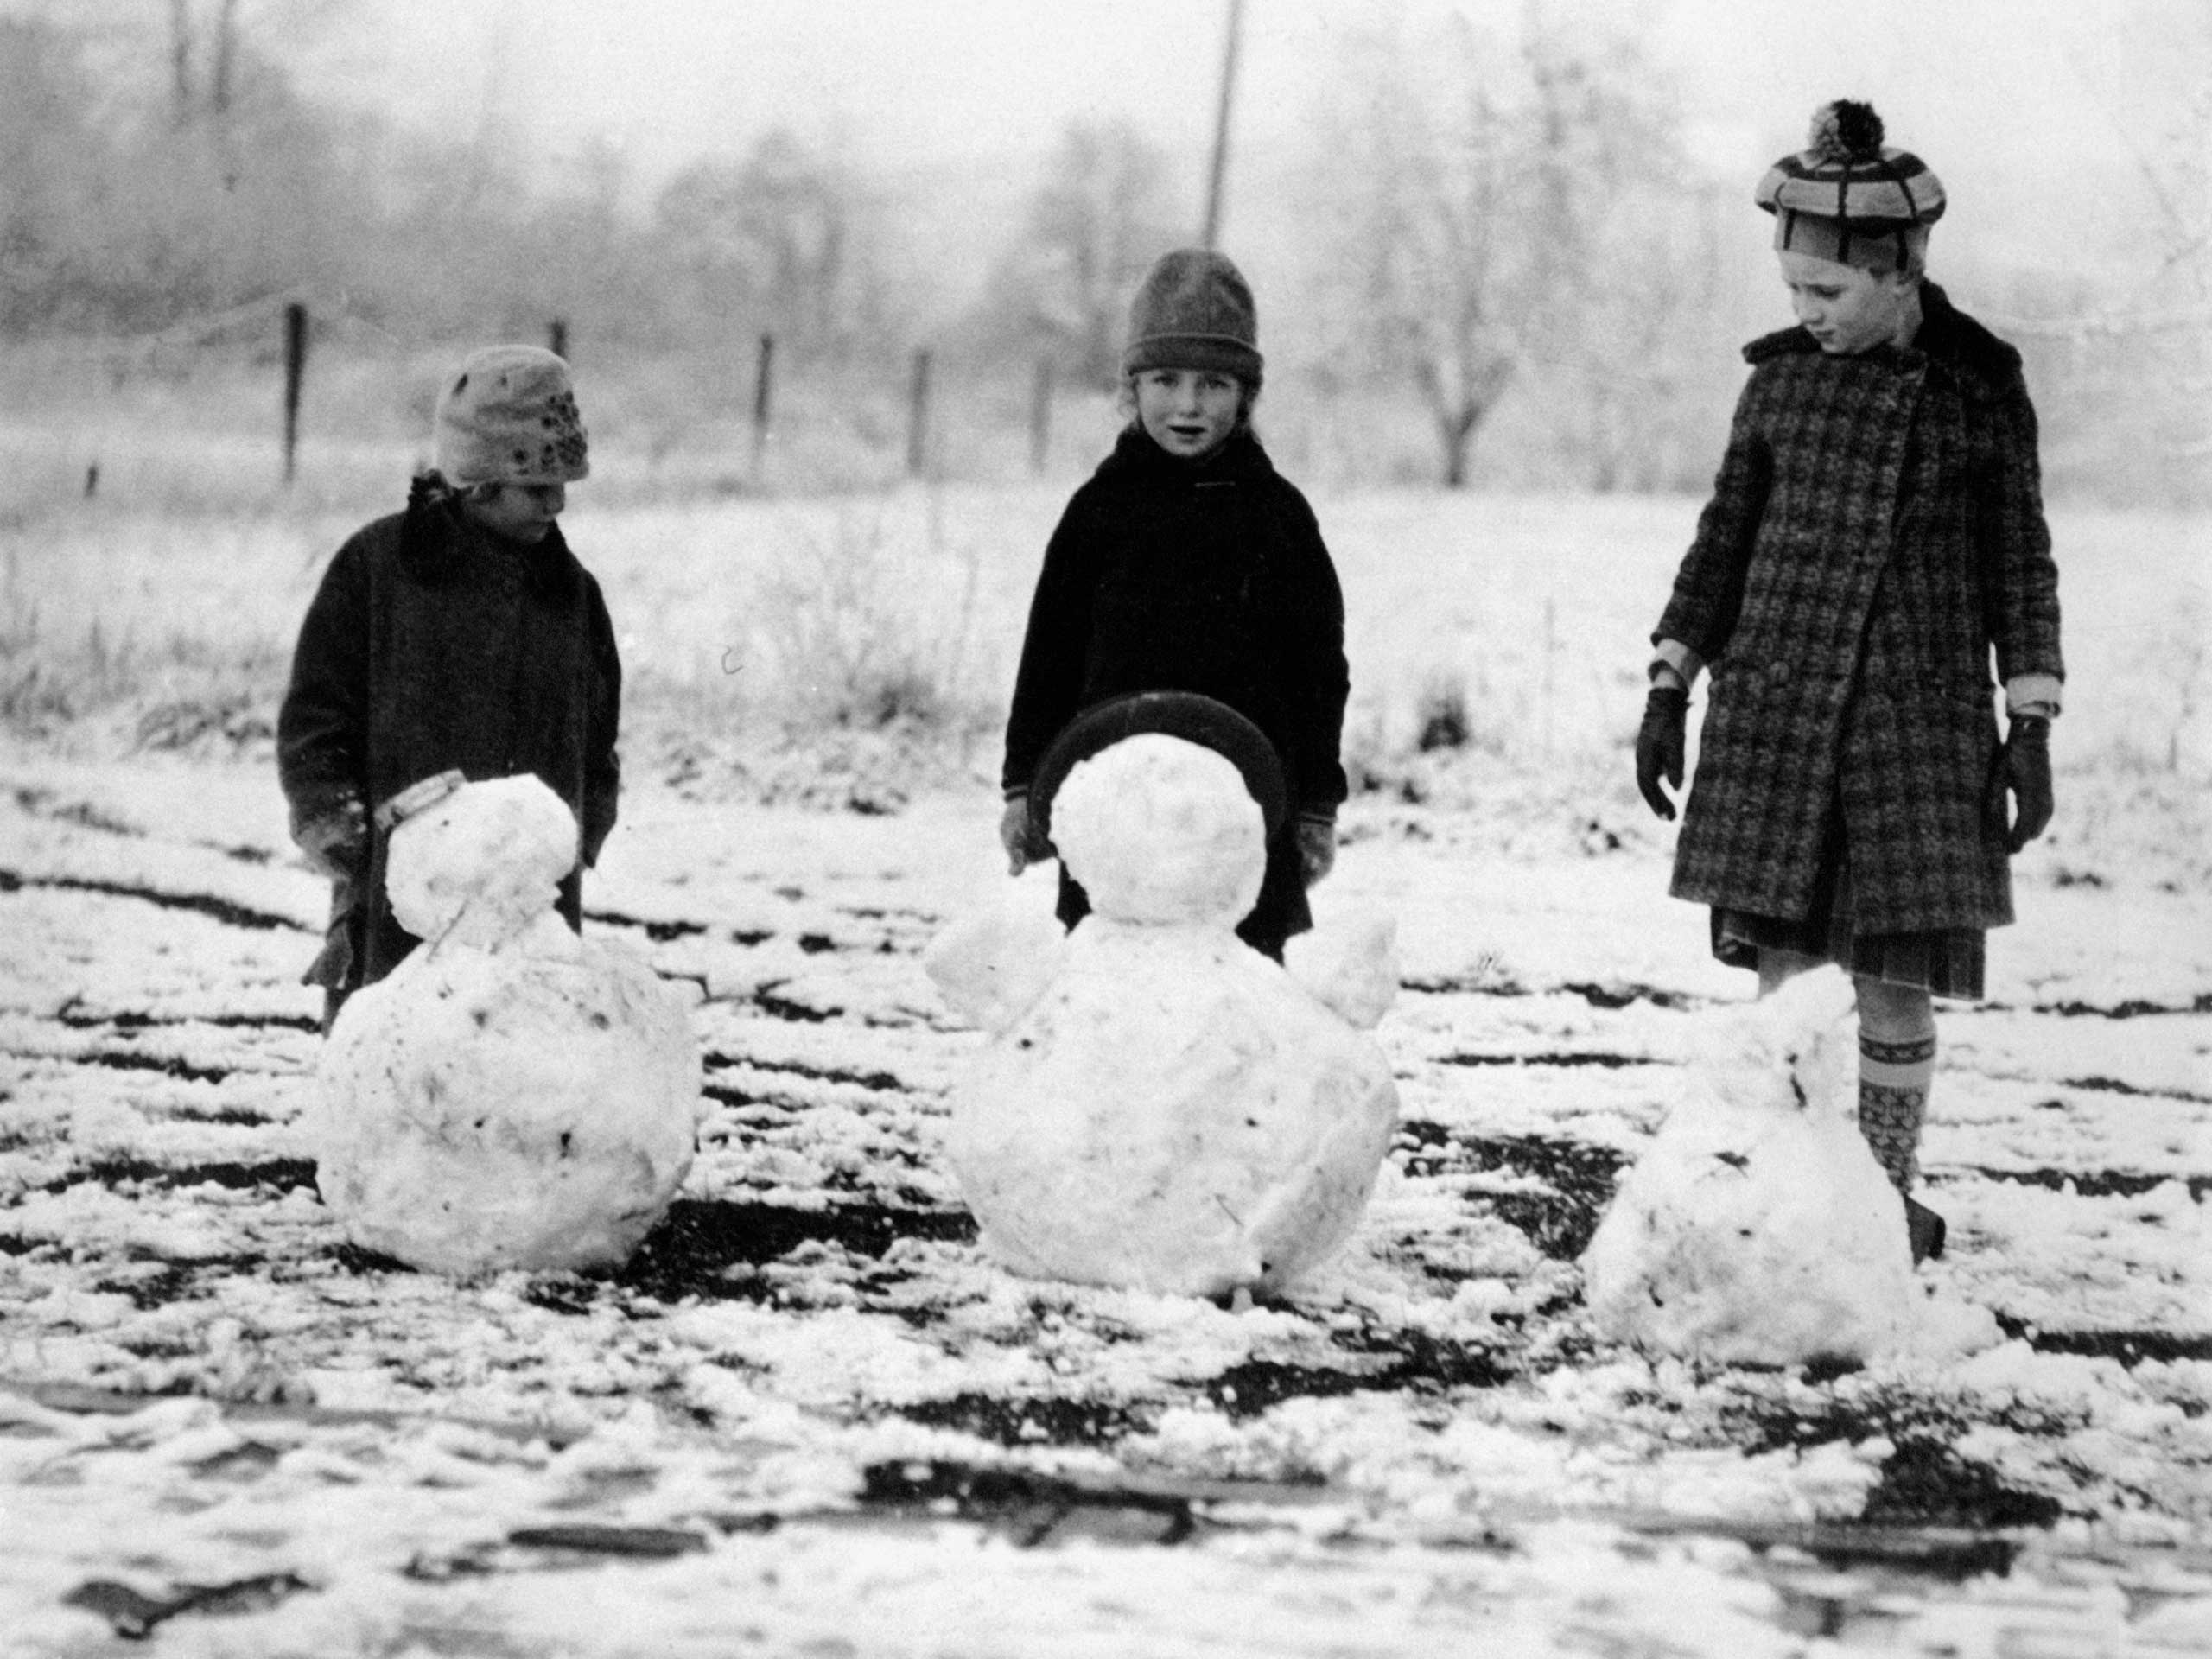 Children making snowmen, late 1920s or early 1930s.